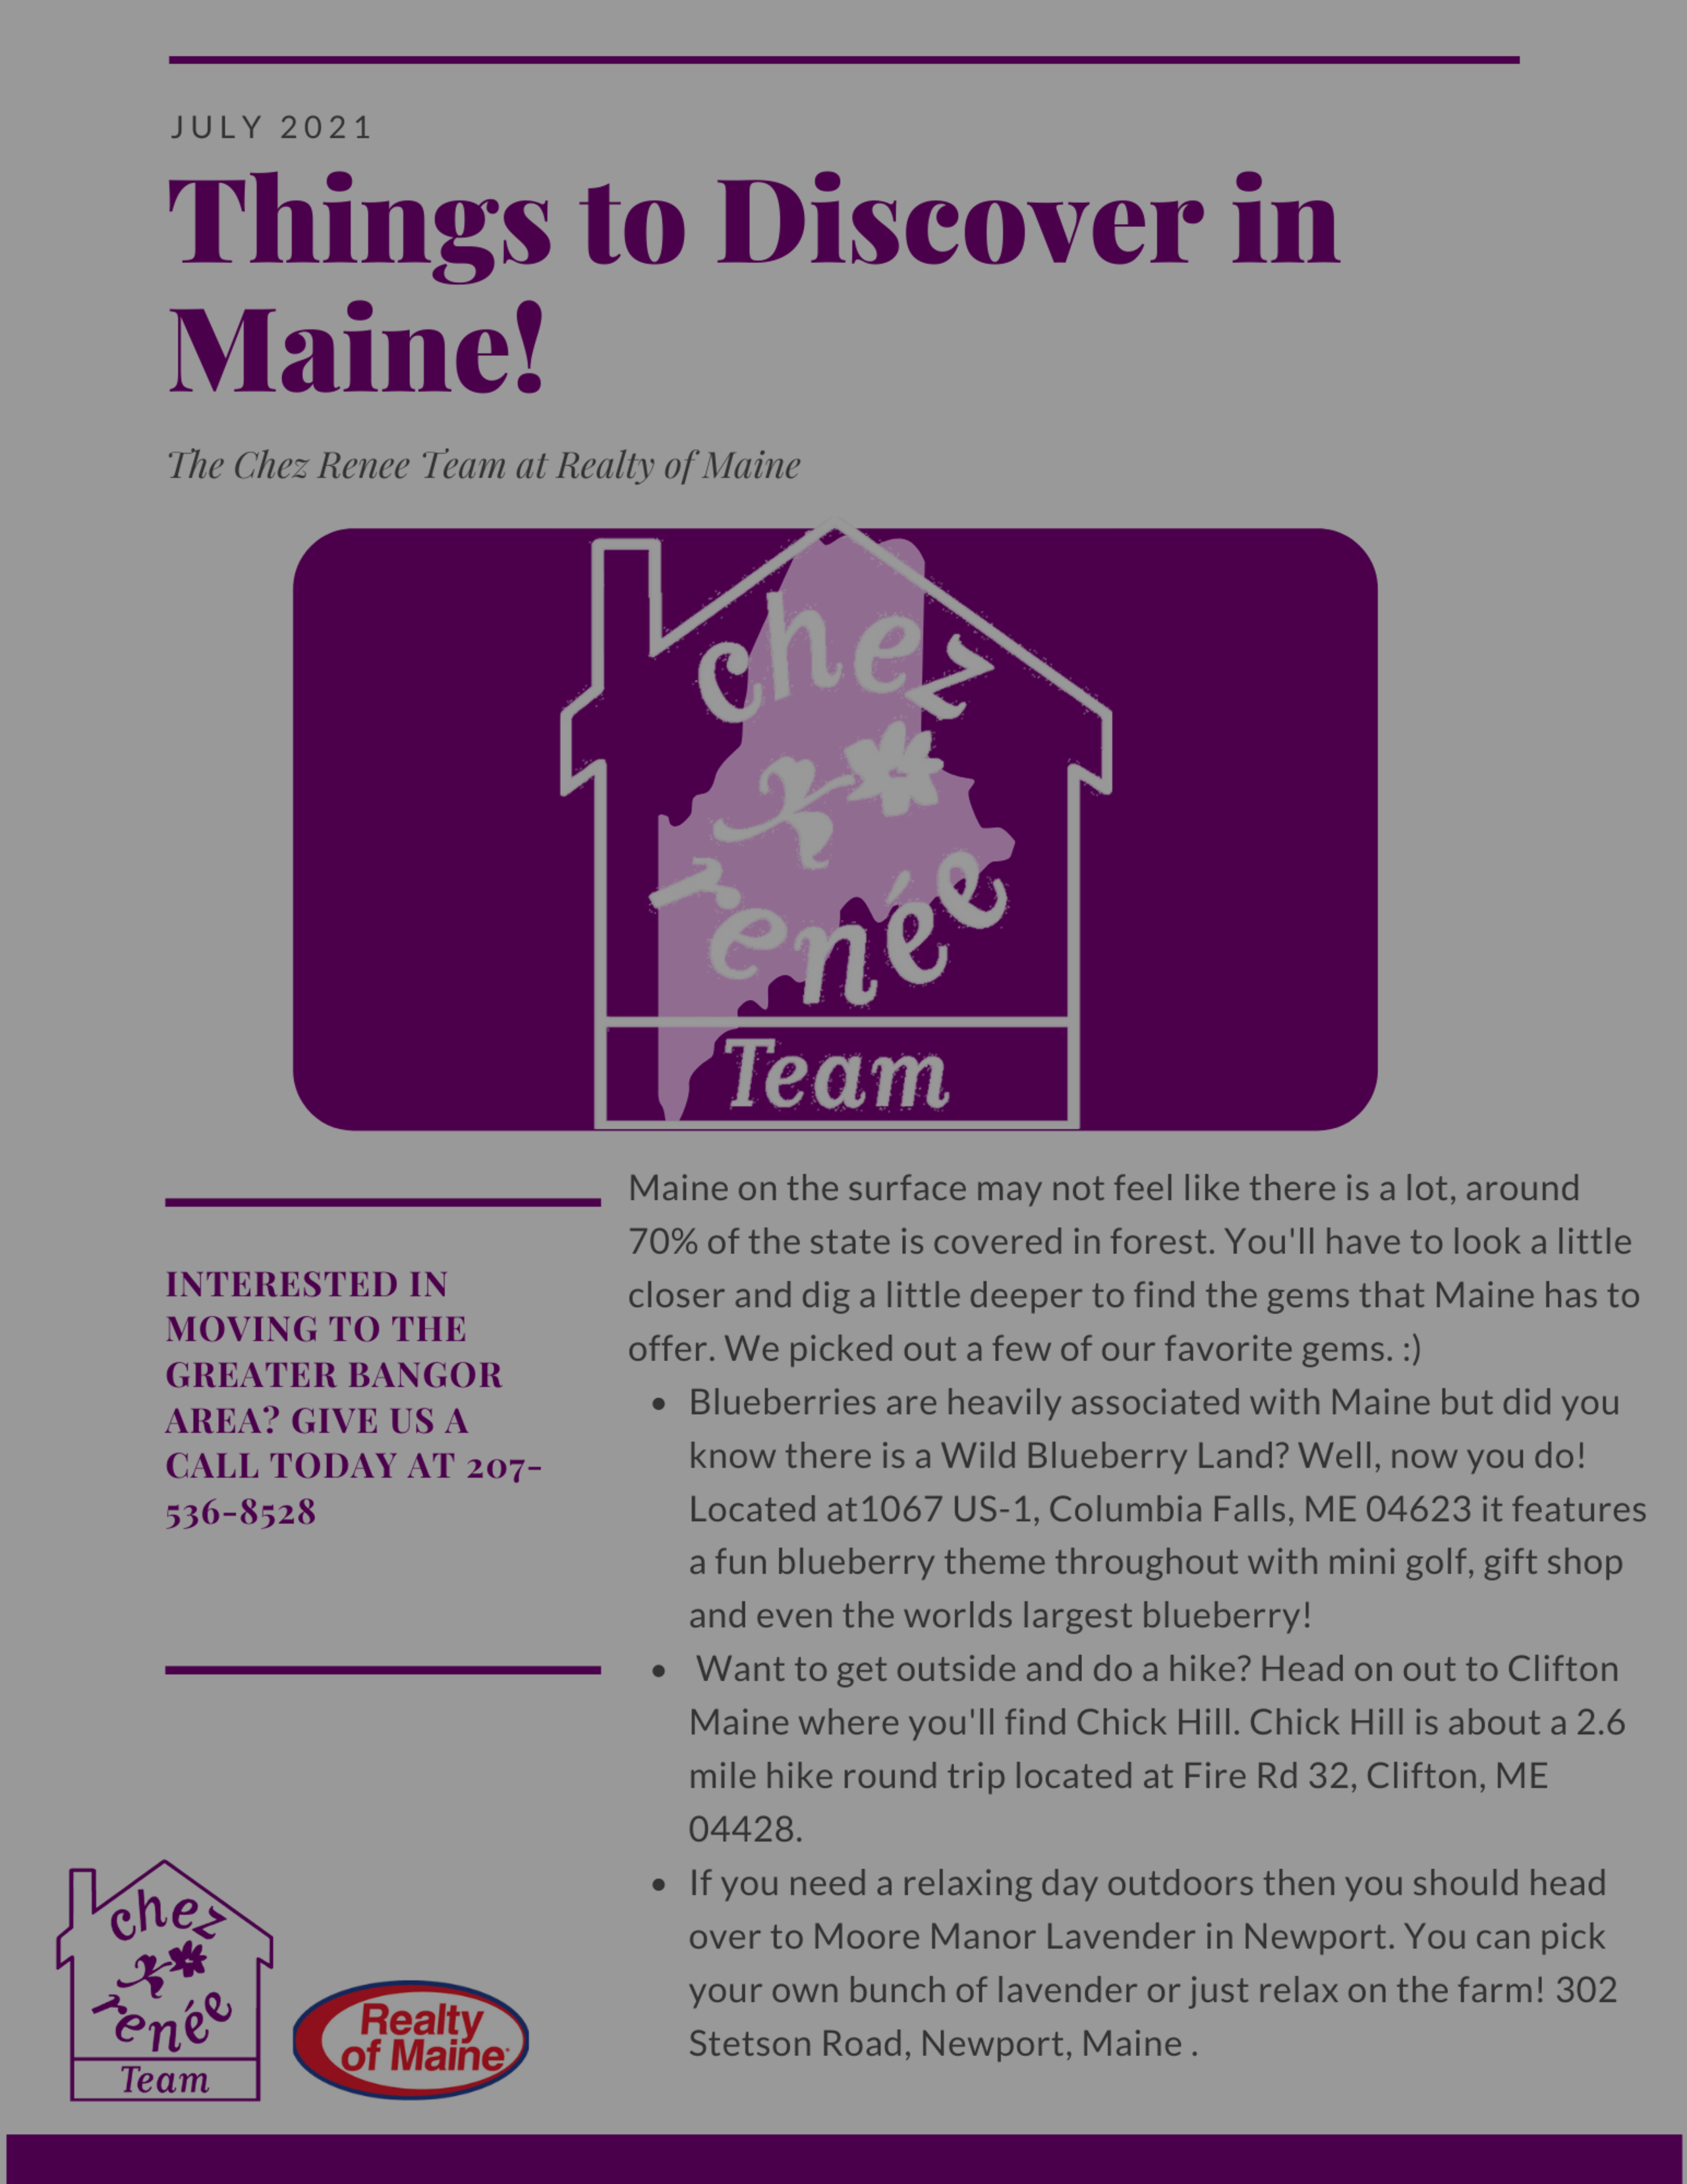 Things to Discover in Maine